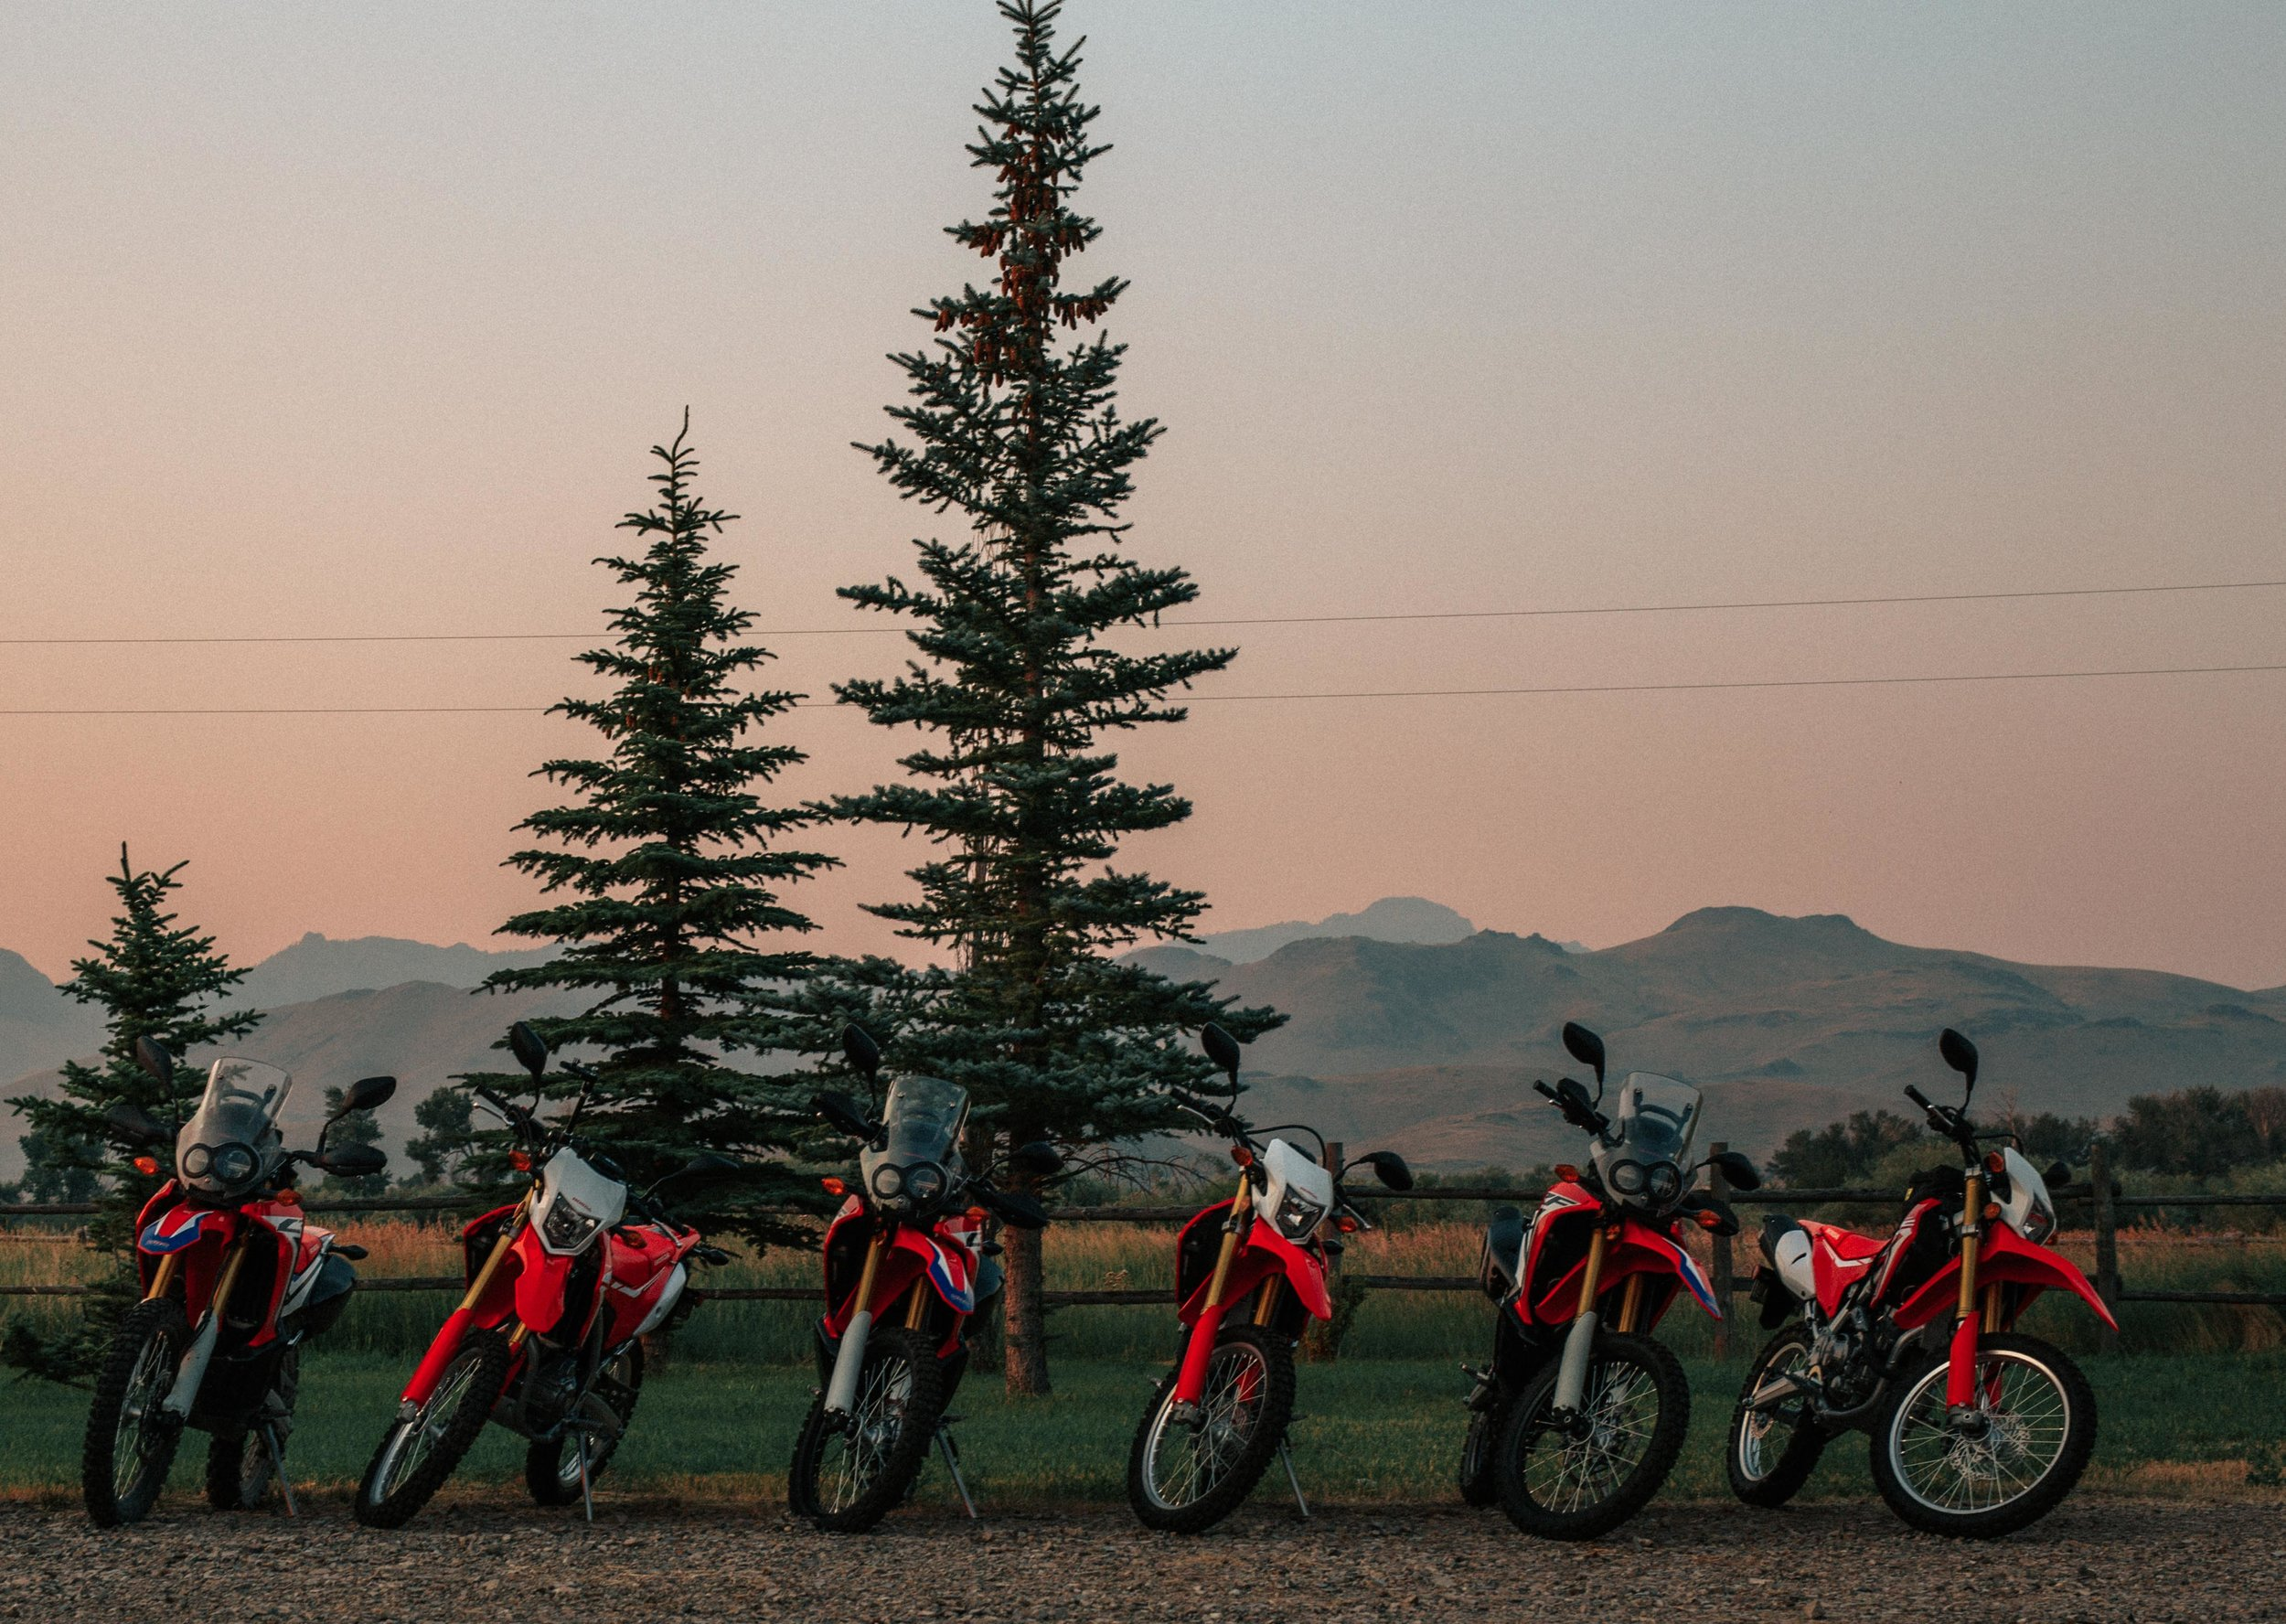 HONDA USA Press bikes lined up in front of the cabin the first morning of the 2016 KLIM Dualsport Summit. The views from the cabin were breathtaking to say the least.